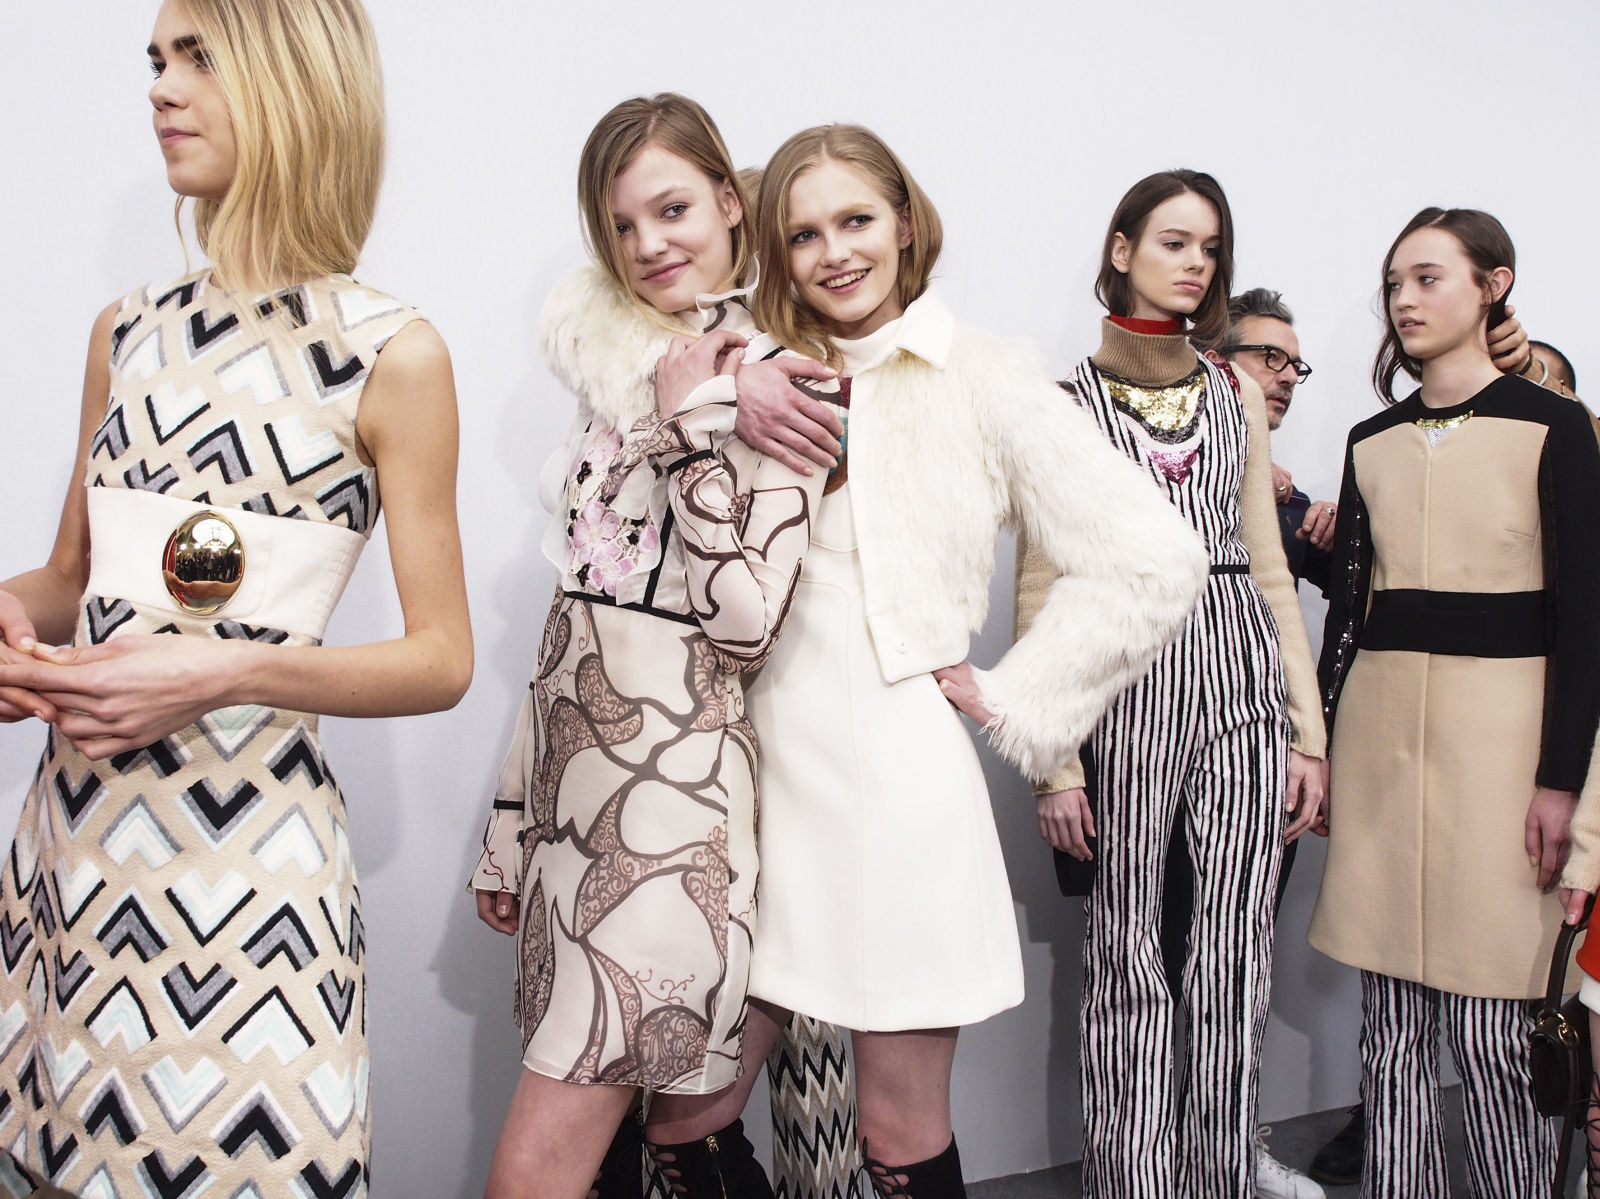 Ellecom 5 Net A Porter Approved Trends To Invest In Next Fall